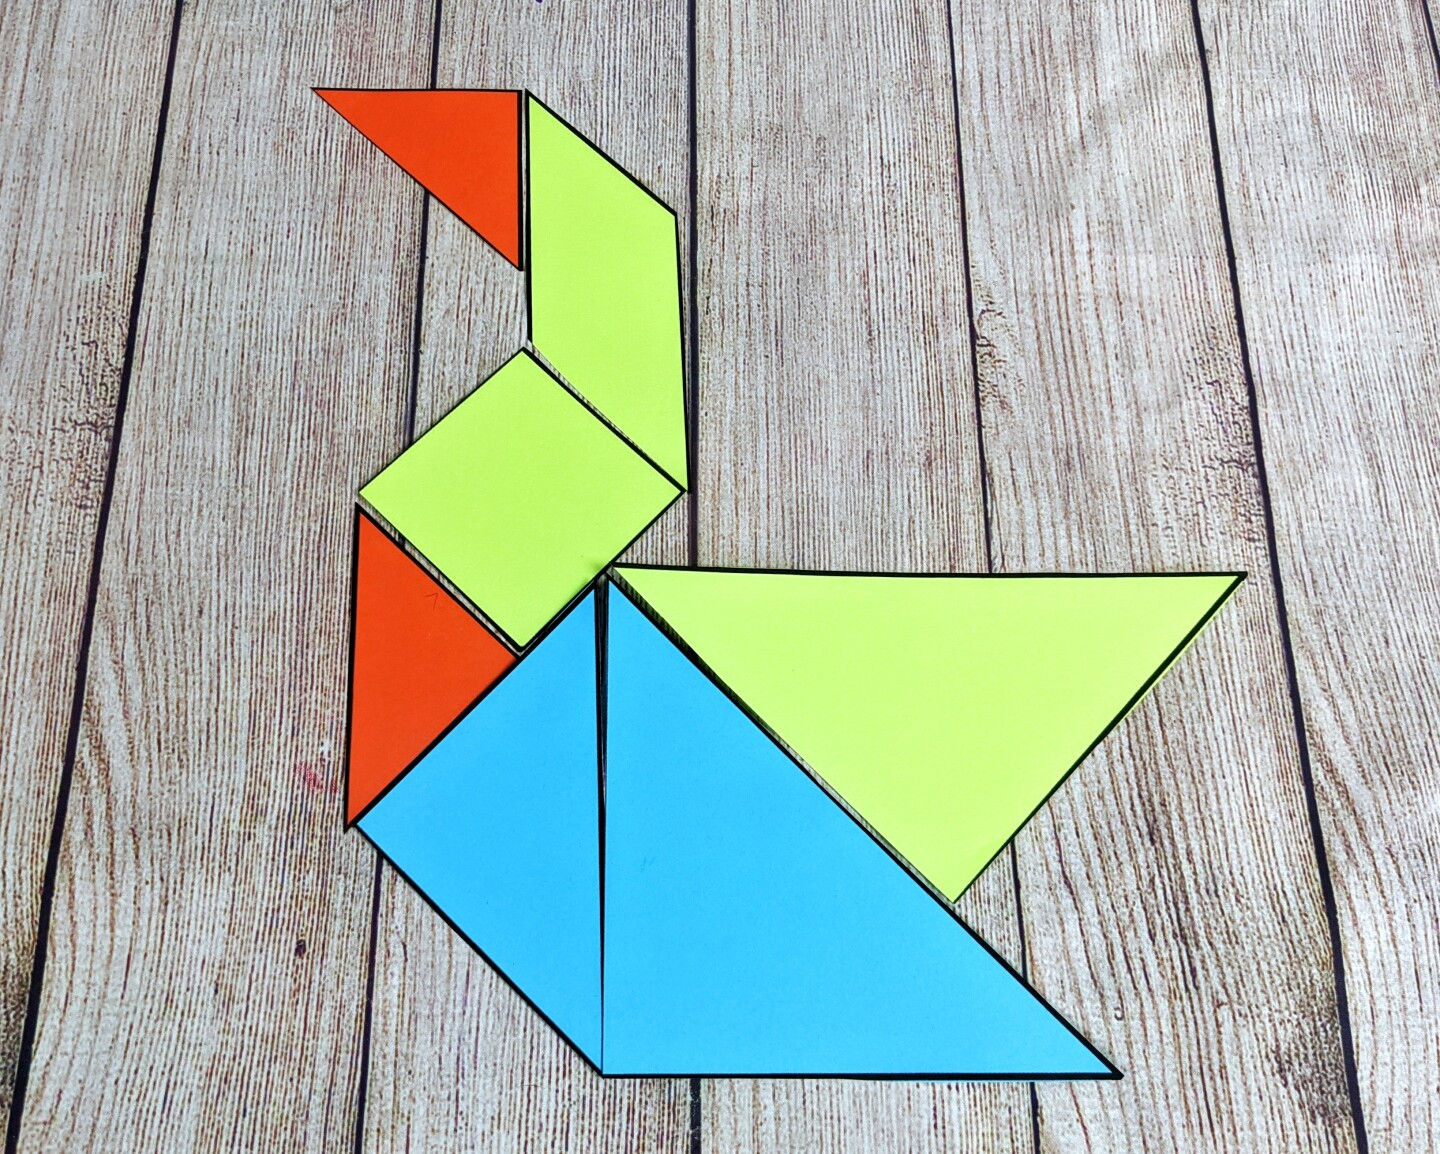 Tangram shapes arranged in the shape of a duck